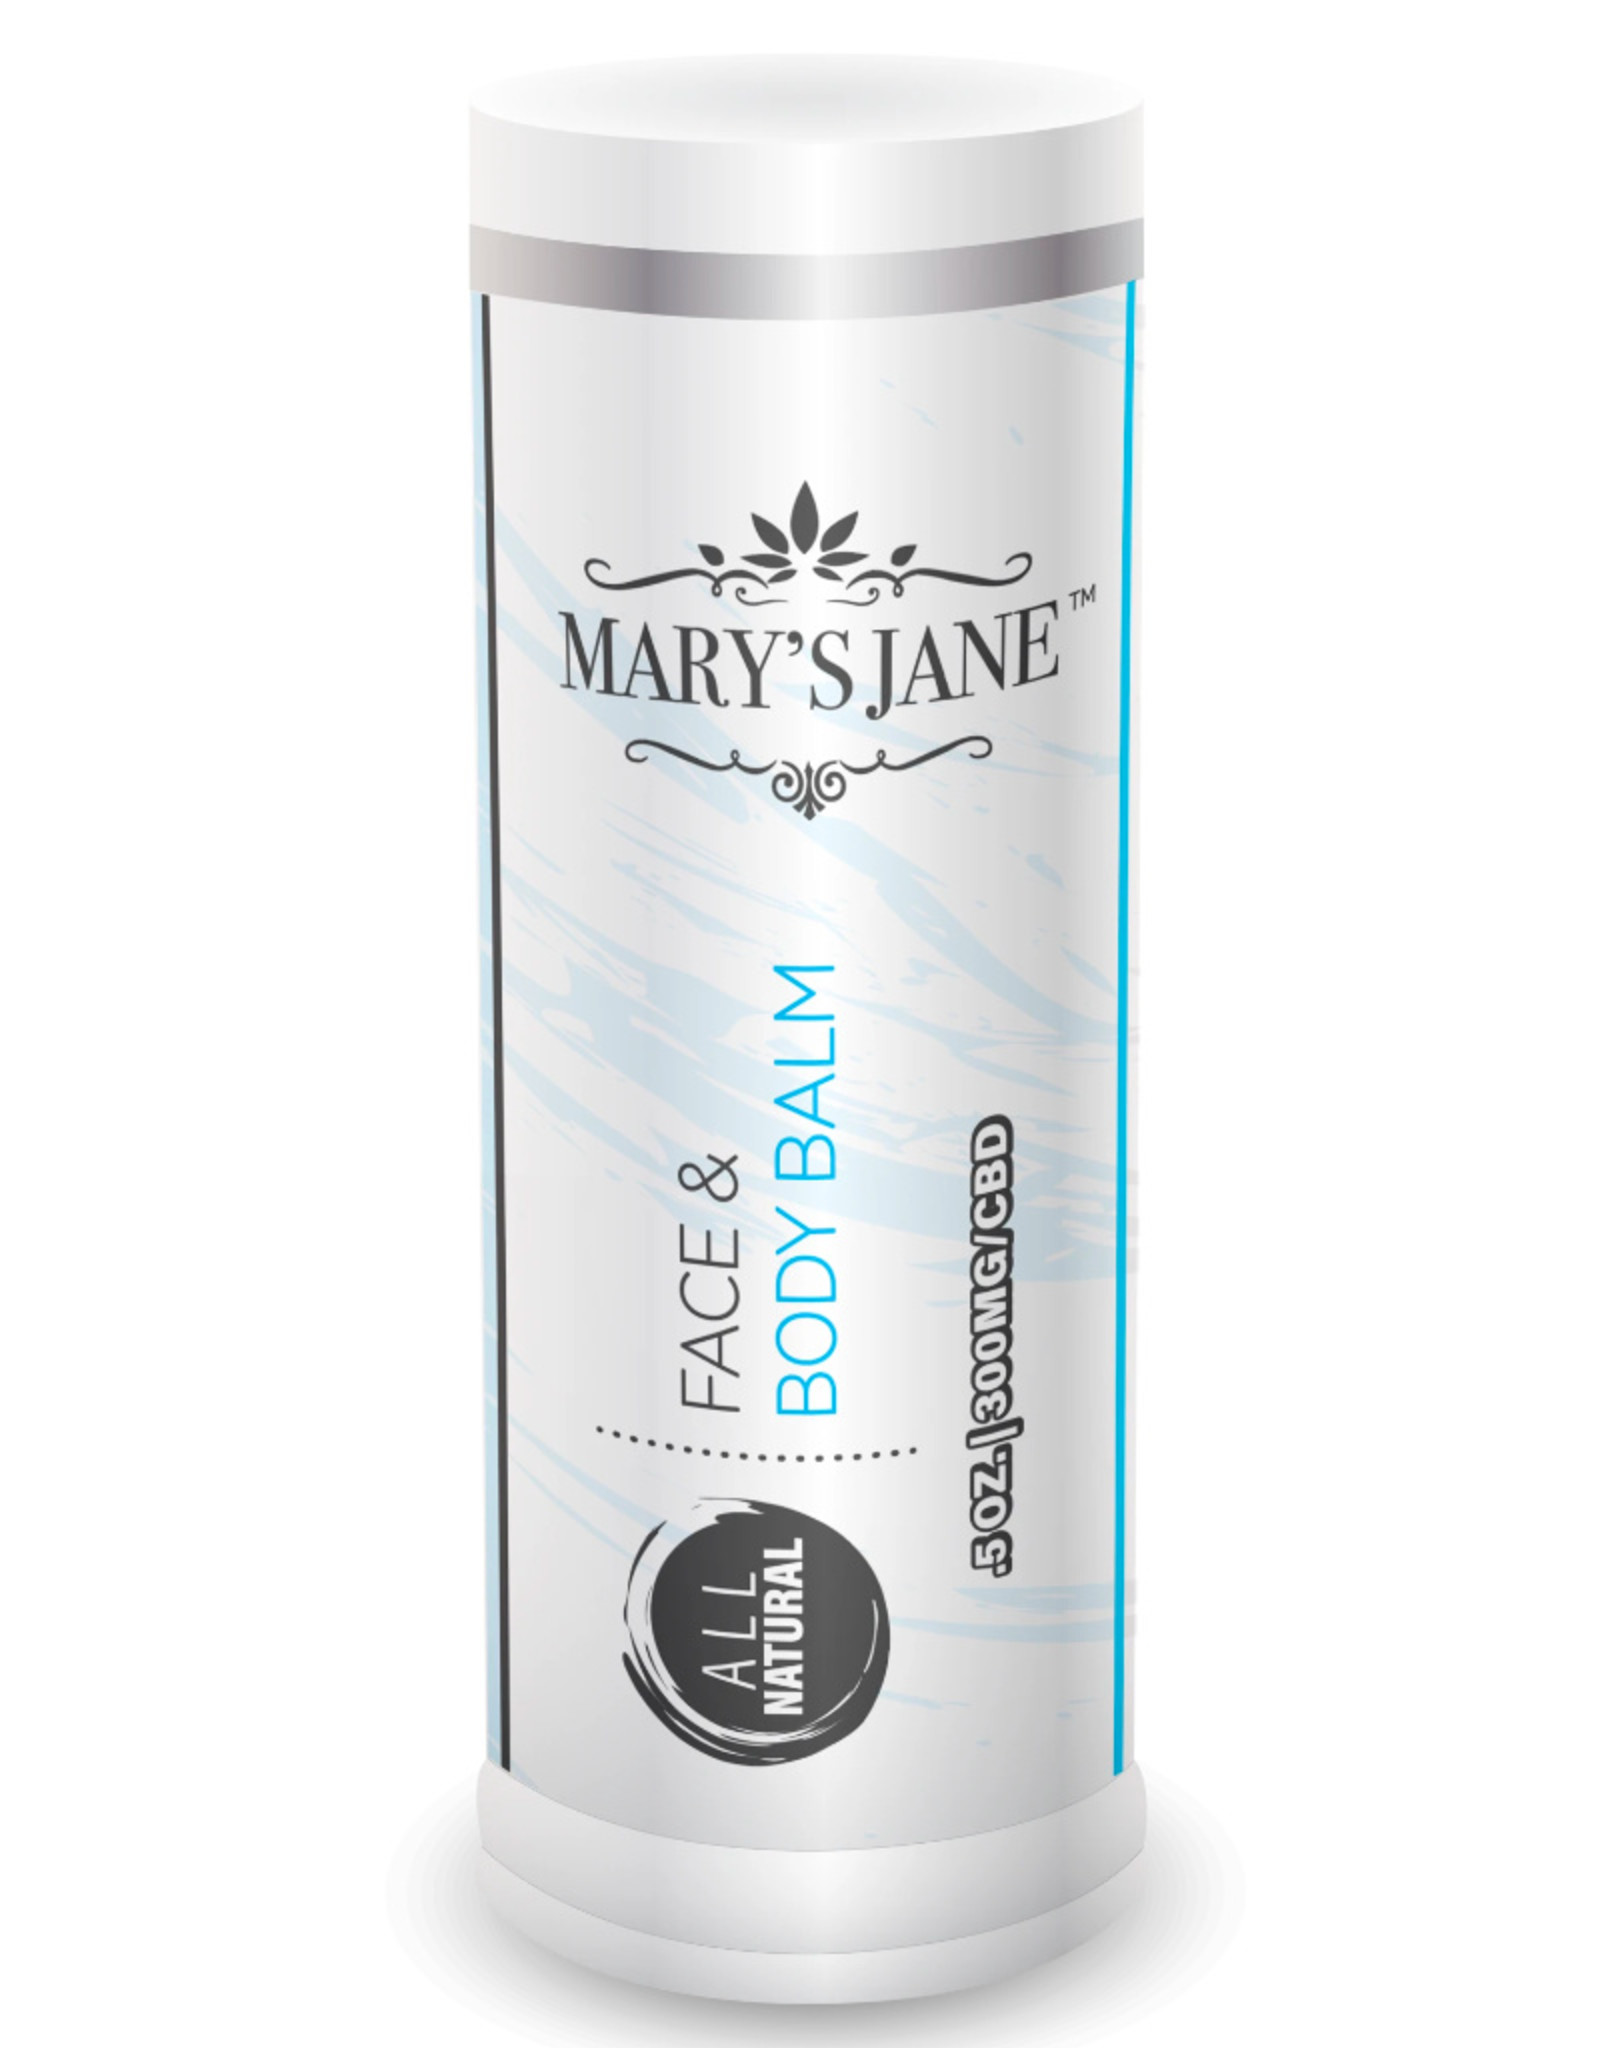 Mary's Jane Face + Body Balm Stick - 300mg CBD